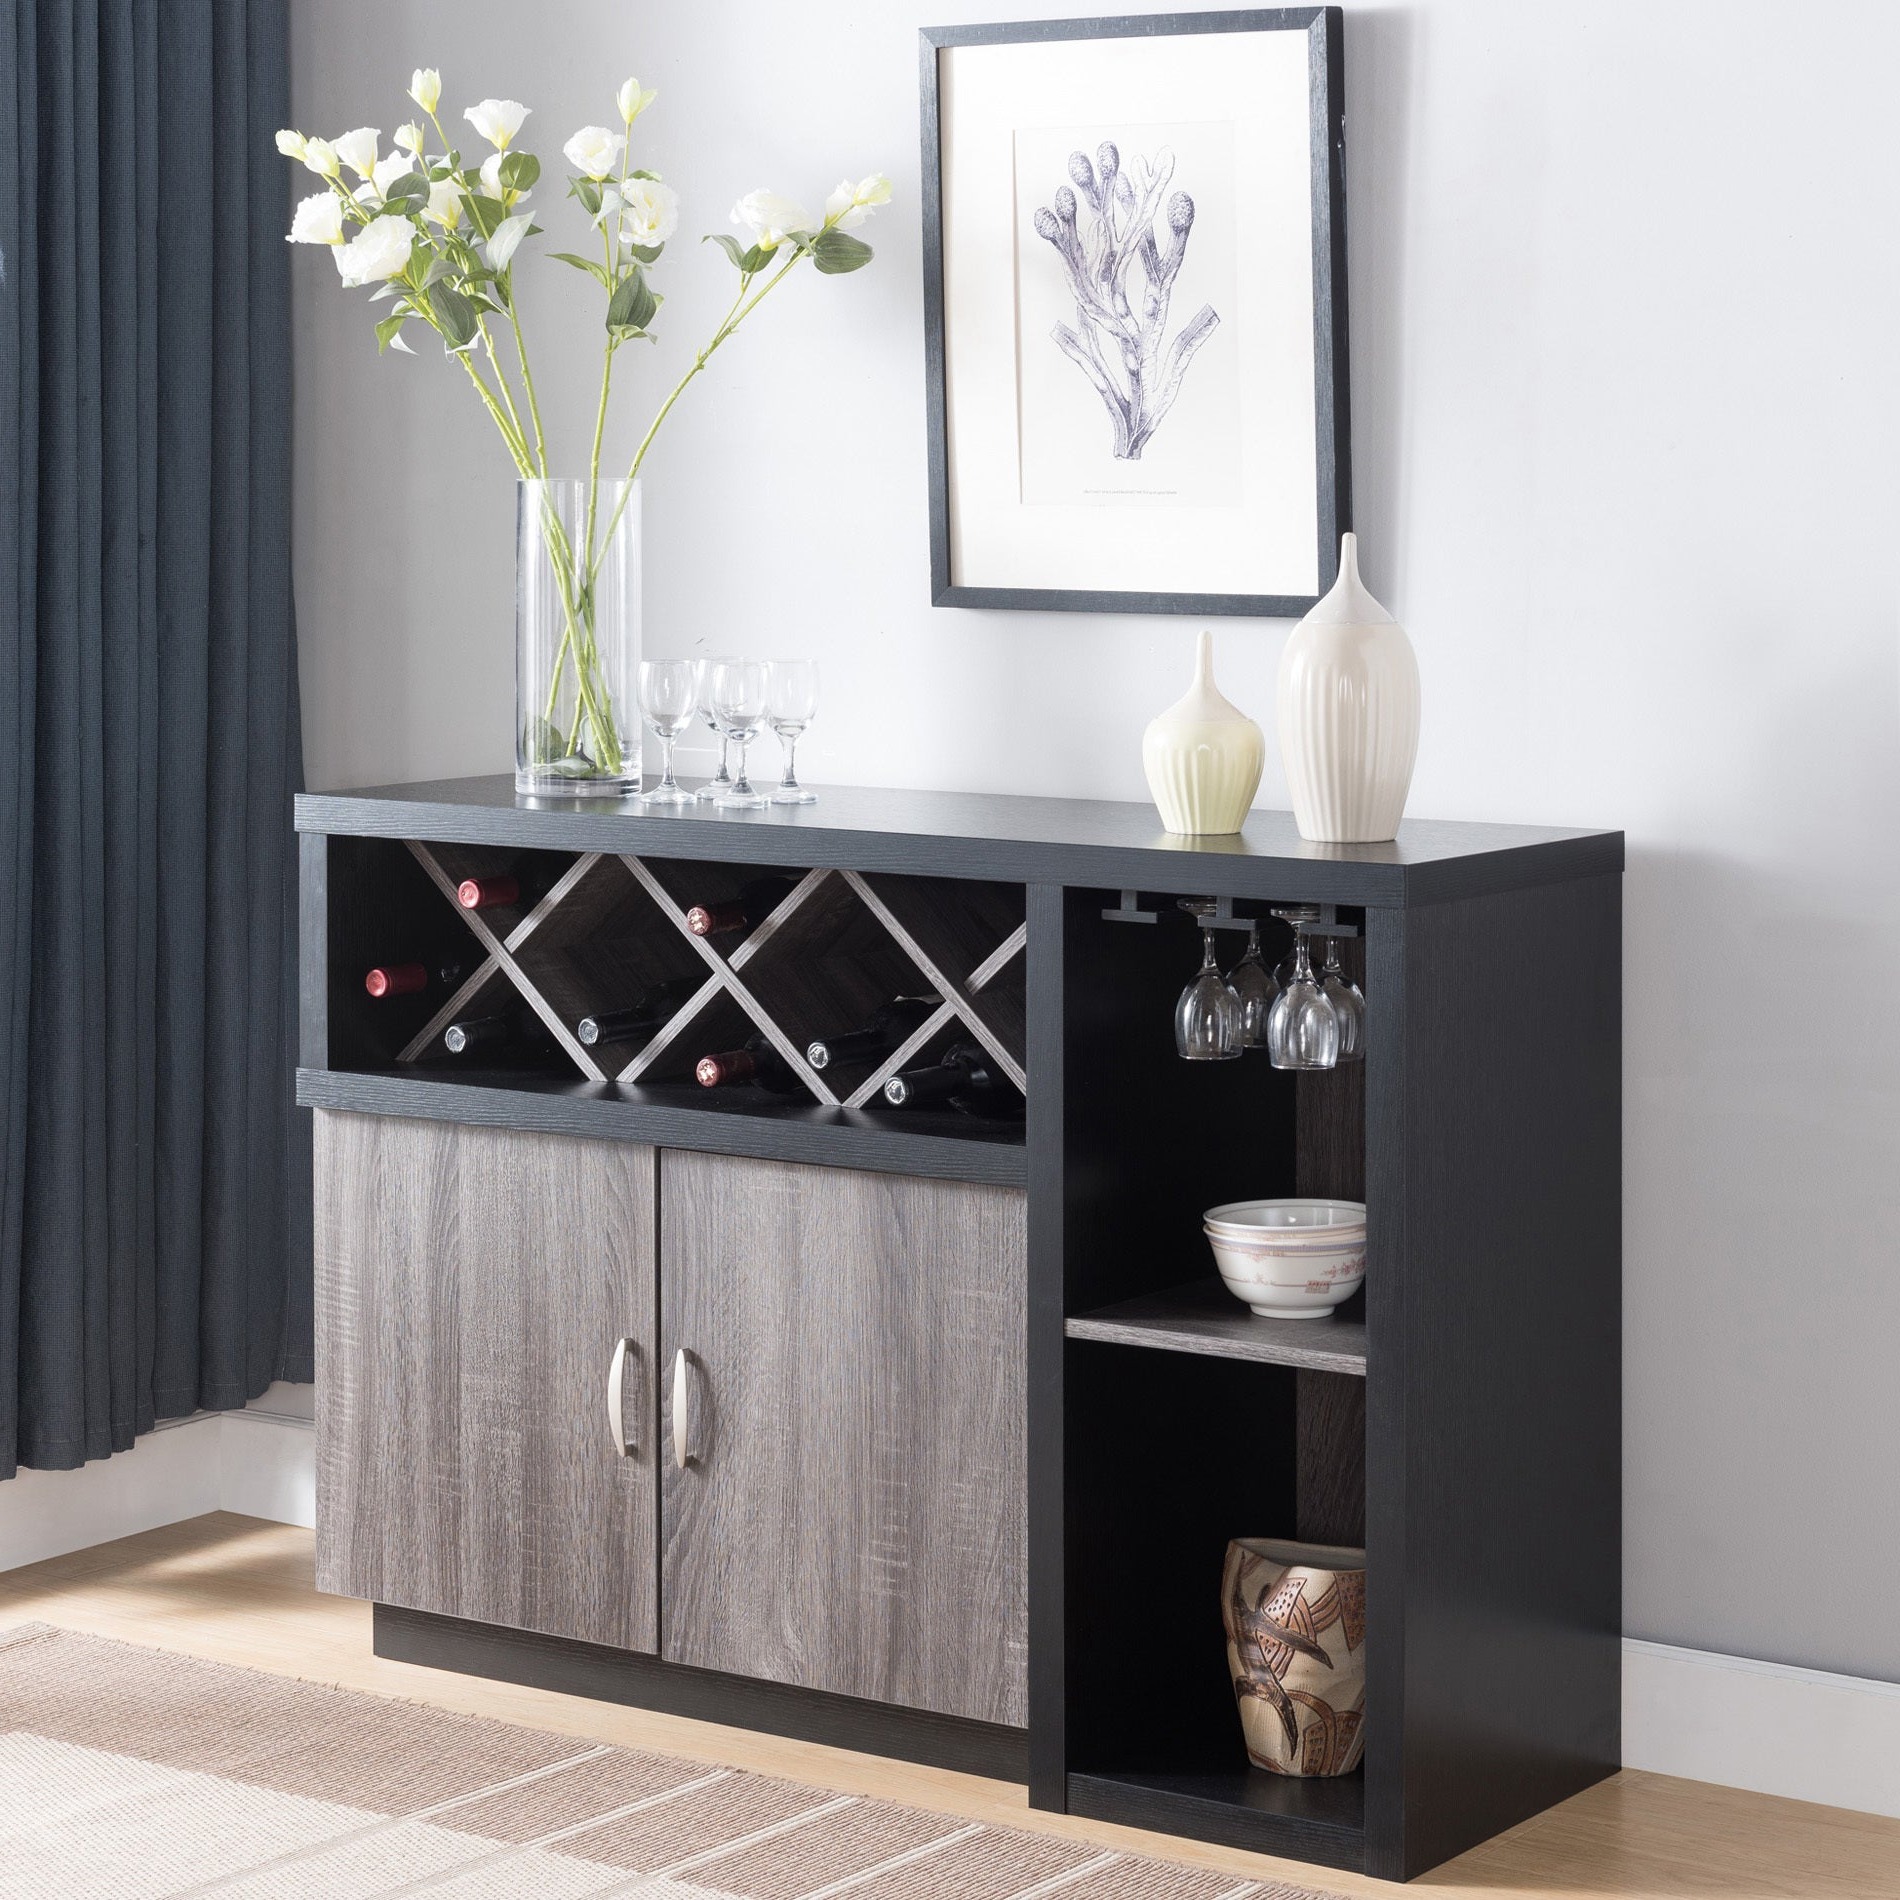 Lantana Contemporary Distressed Grey Buffetfoa Pertaining To Contemporary Style Wooden Buffets With Two Side Door Storage Cabinets (View 11 of 20)